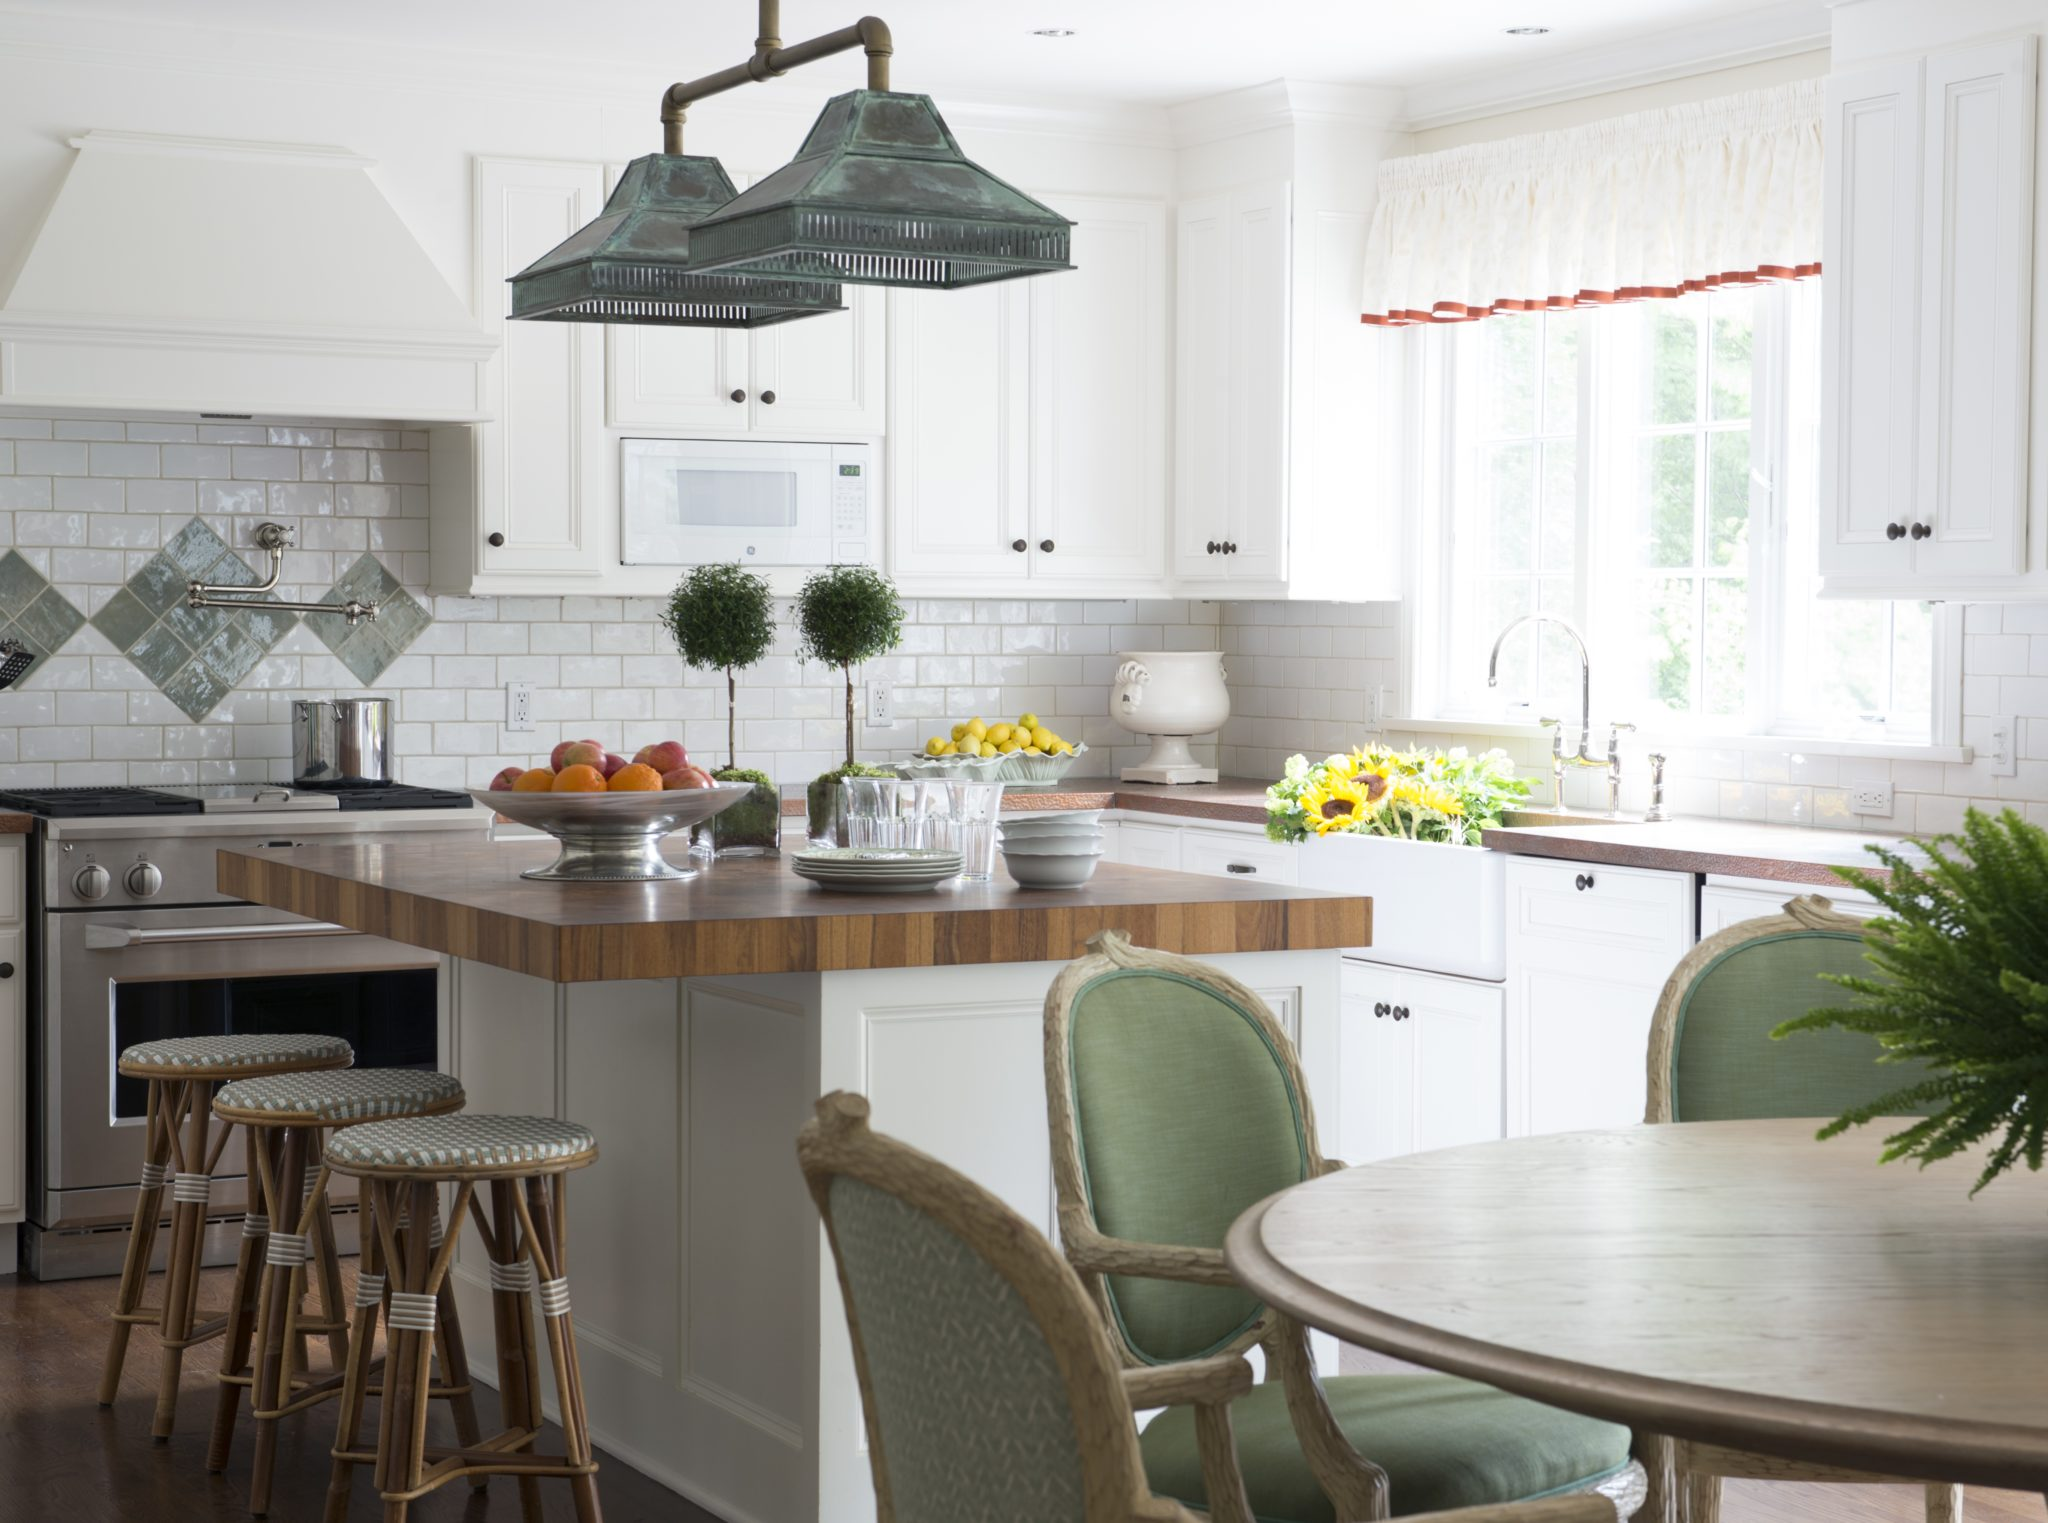 A Charming Kitchen and Dining Room by Allison Caccoma, Inc.